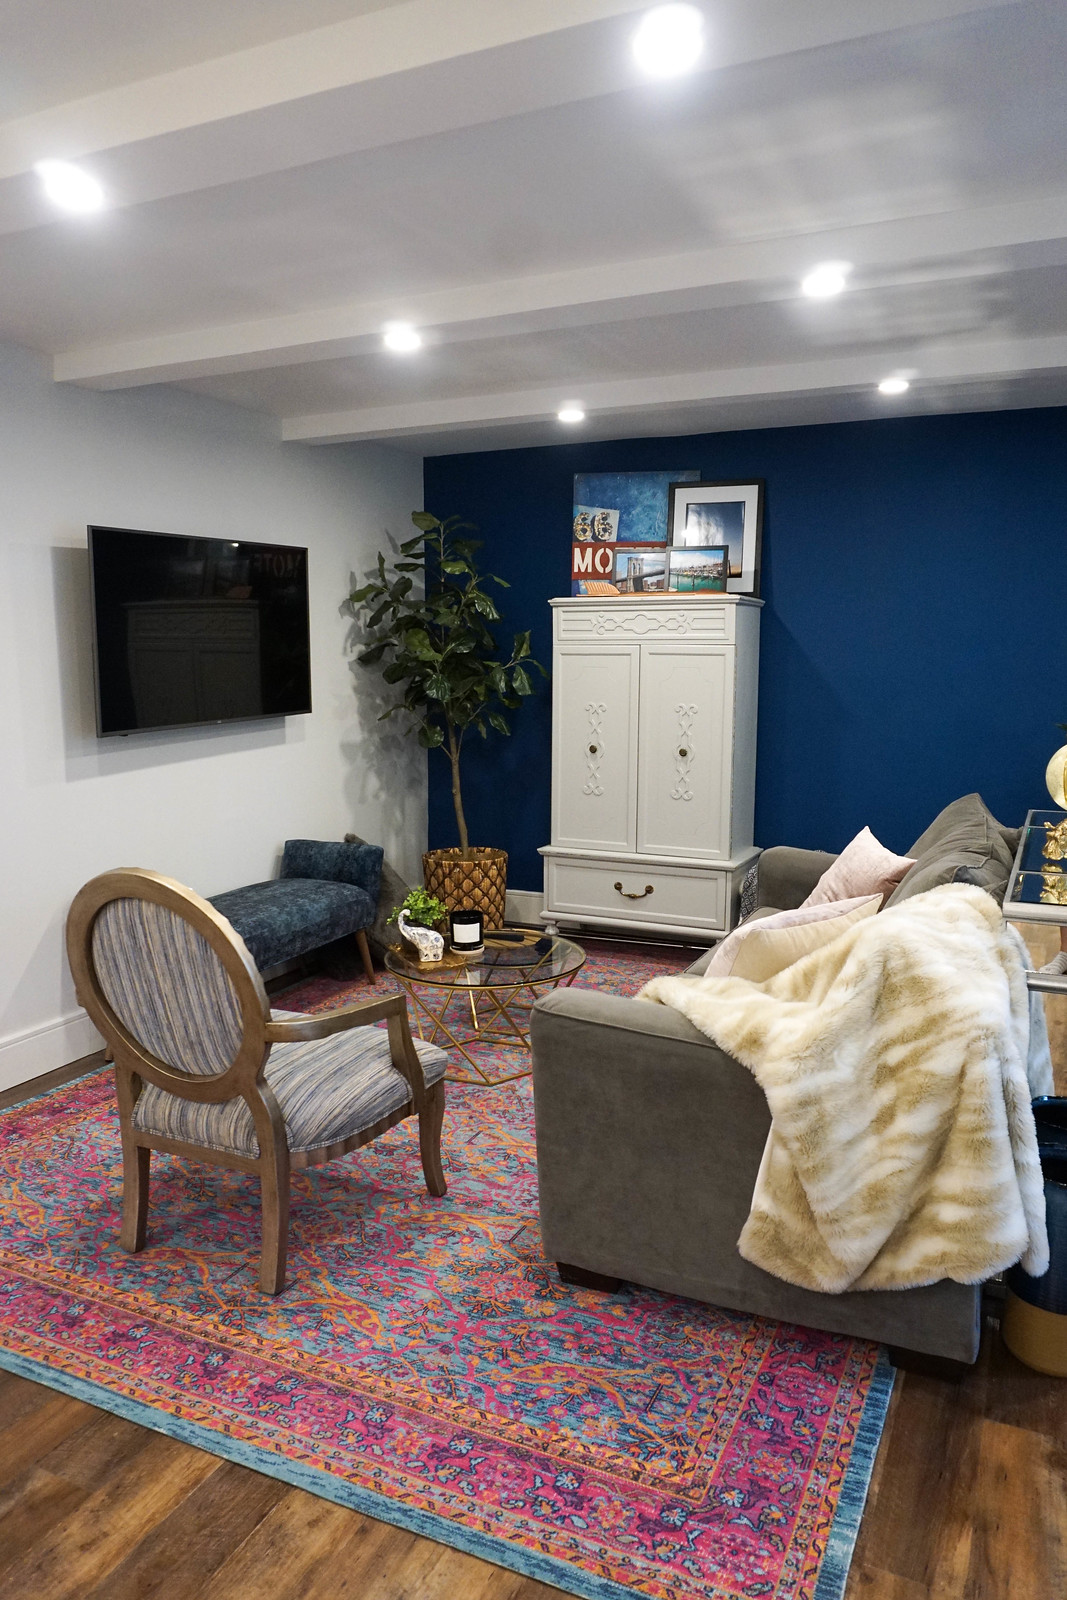 Eclectic Jewel Tone Living Room Pink Traditional Floral Area Rug Vintage Armoire Benjamin Moore Slate Teal Paint